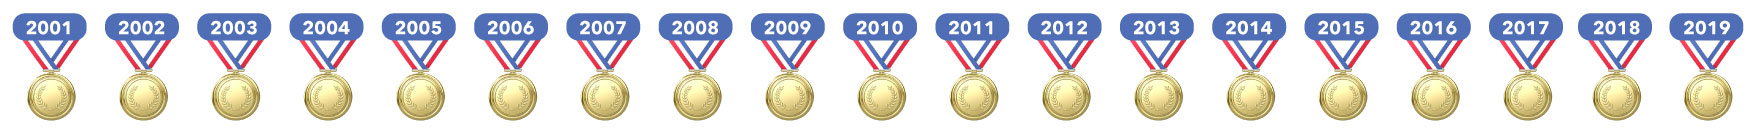 safety medals image